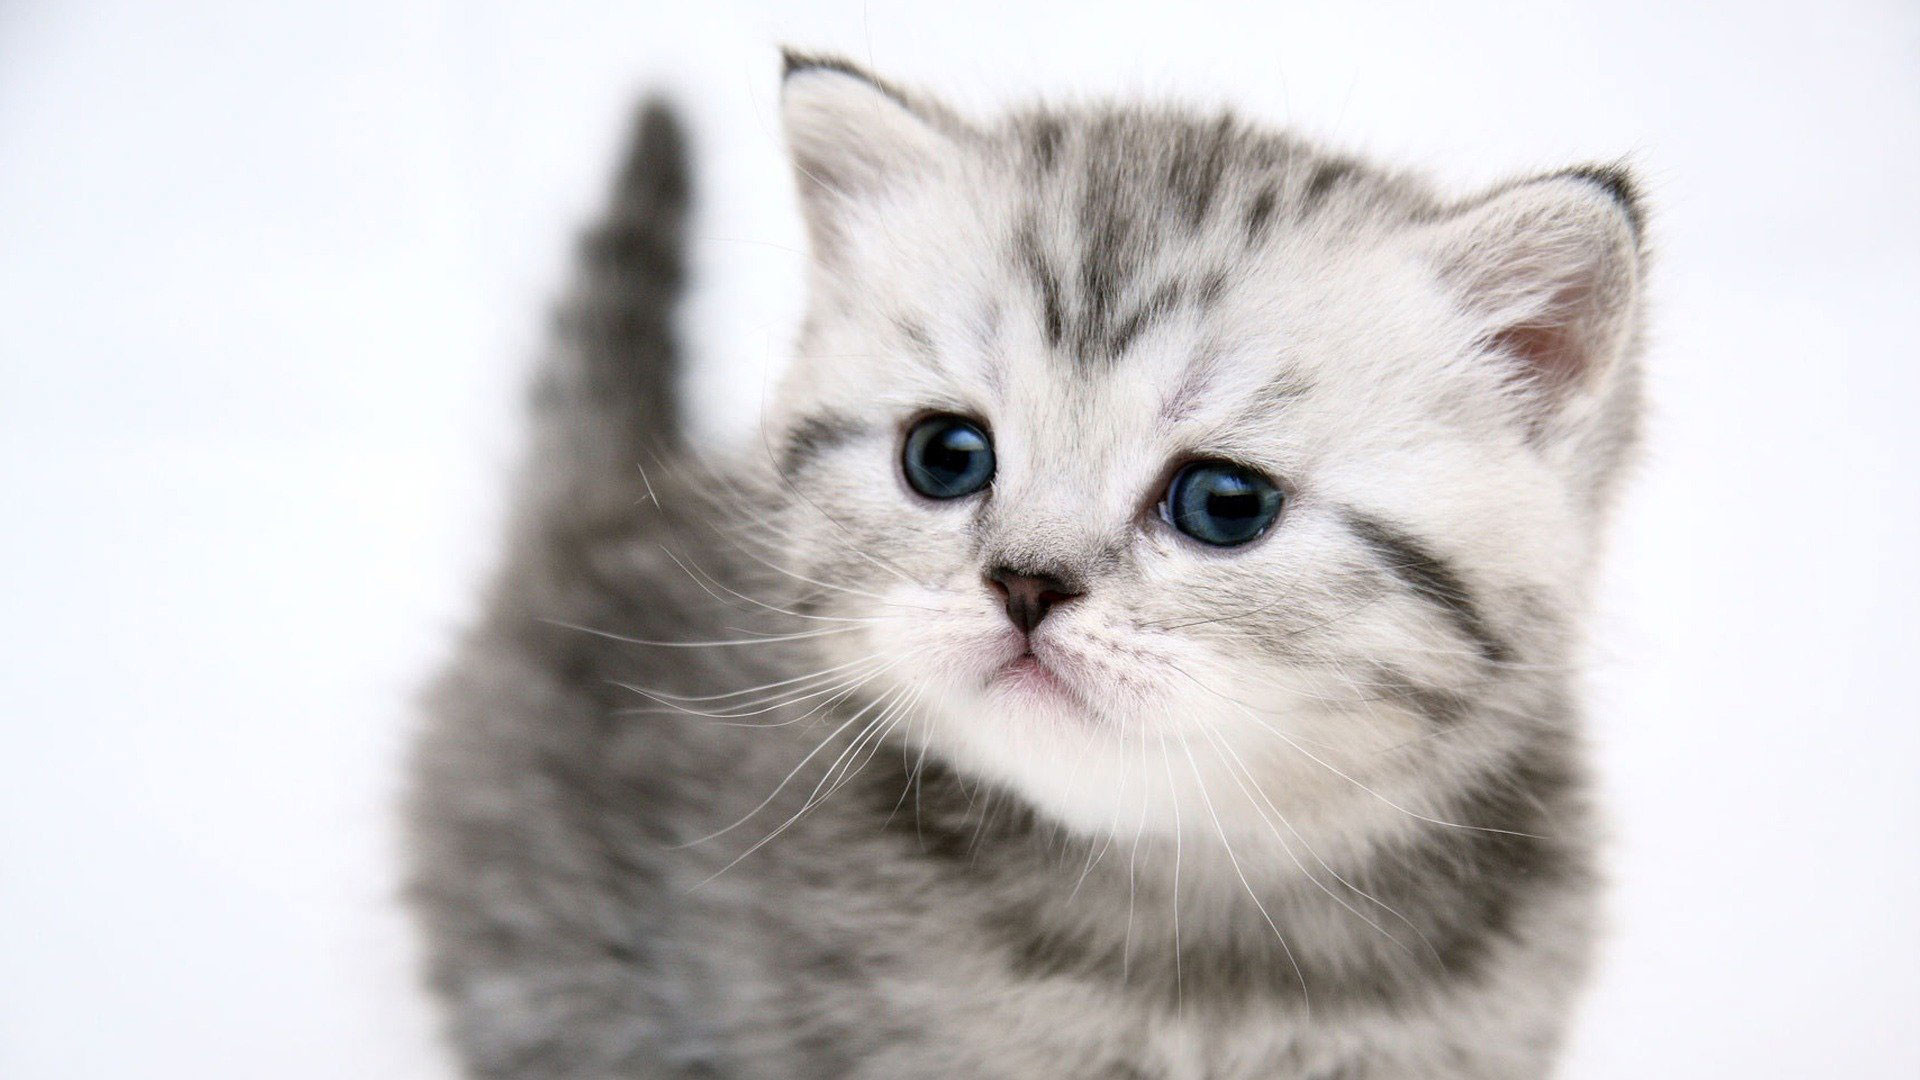 Hd Cat Wallpapers 1920x1080 69 Images: HD Cat Wallpapers (64+ Images